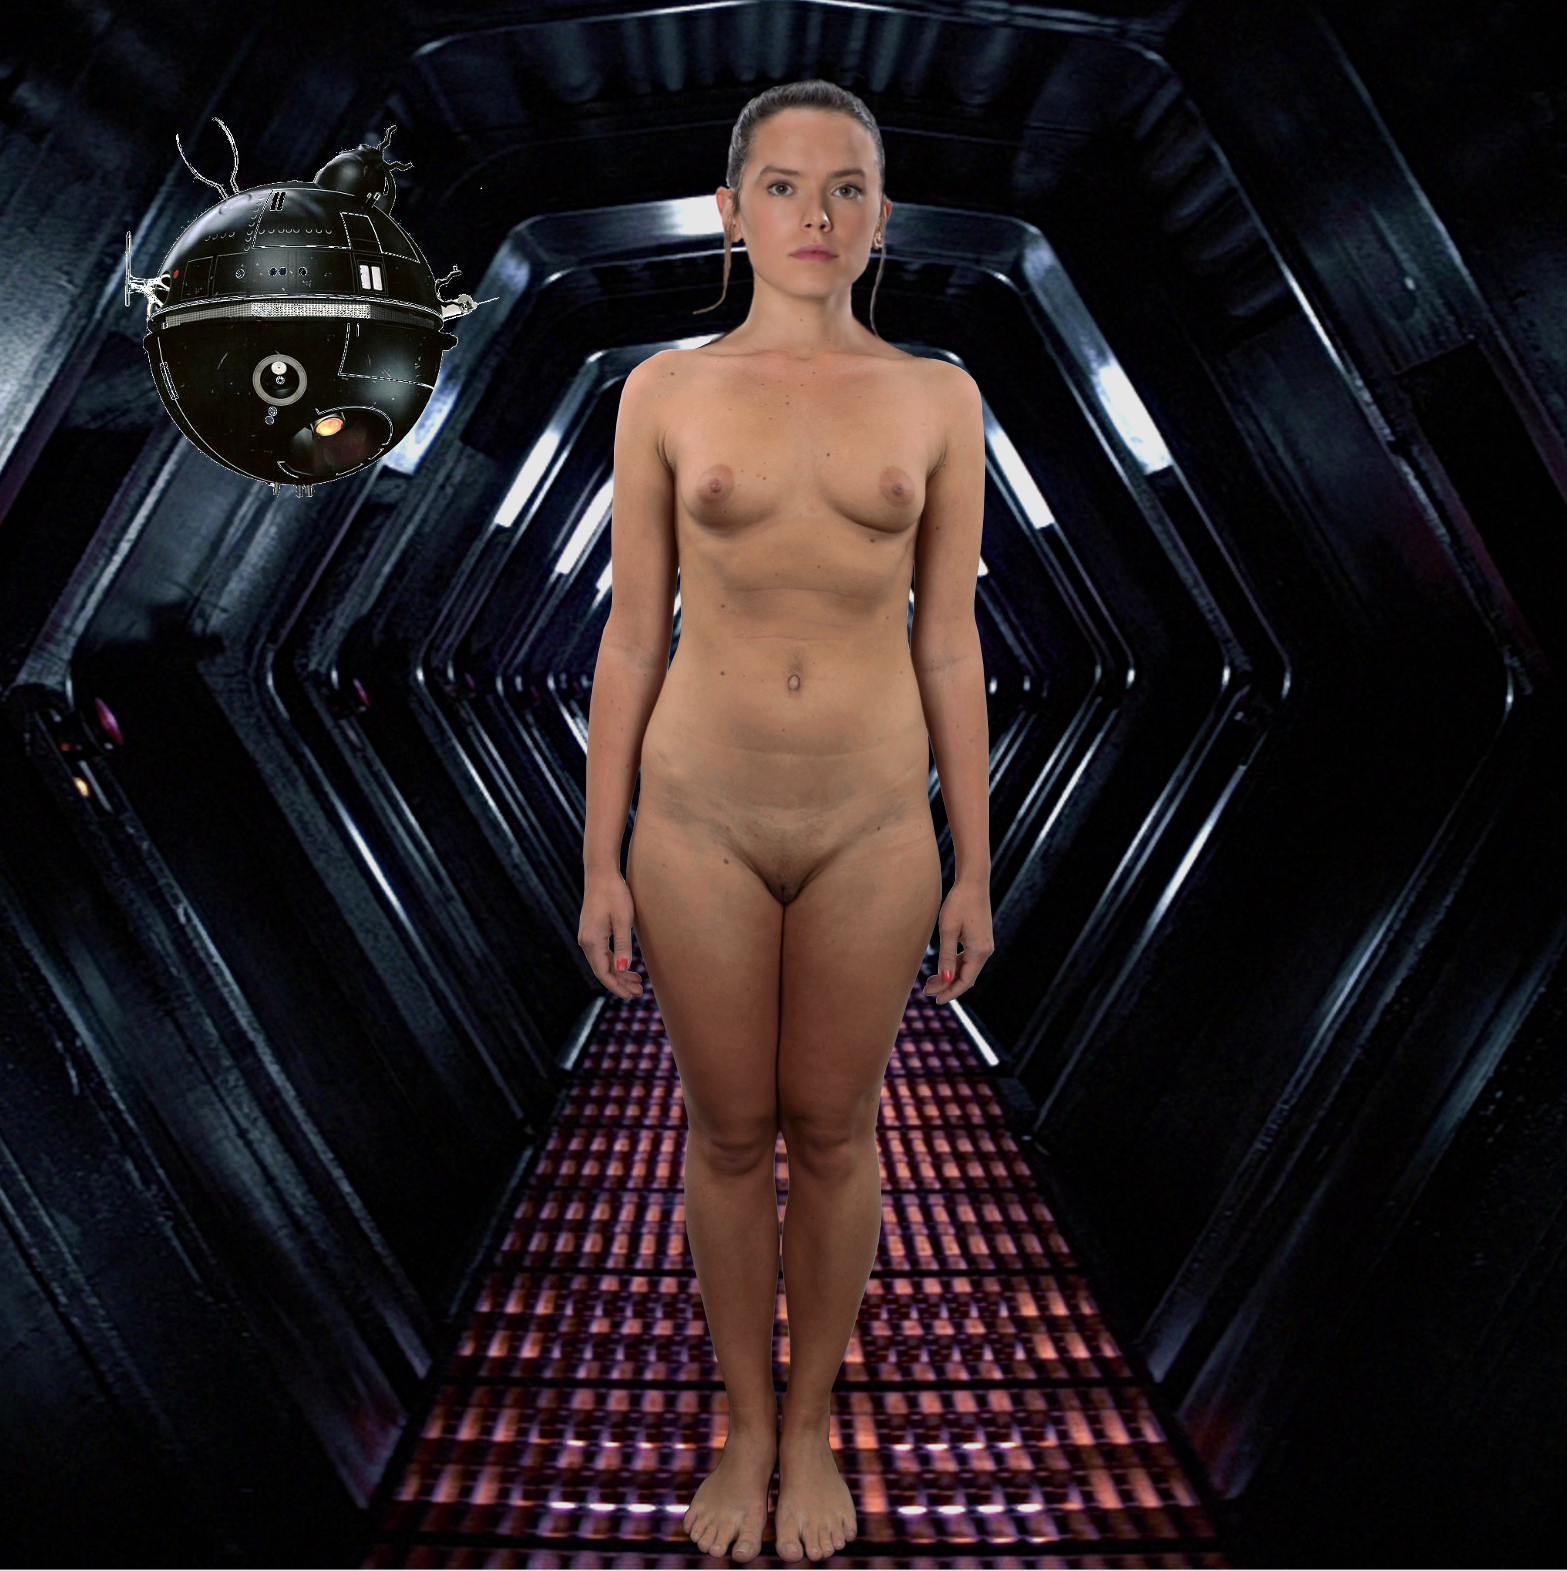 Girls from star wars naked pictures naked photo